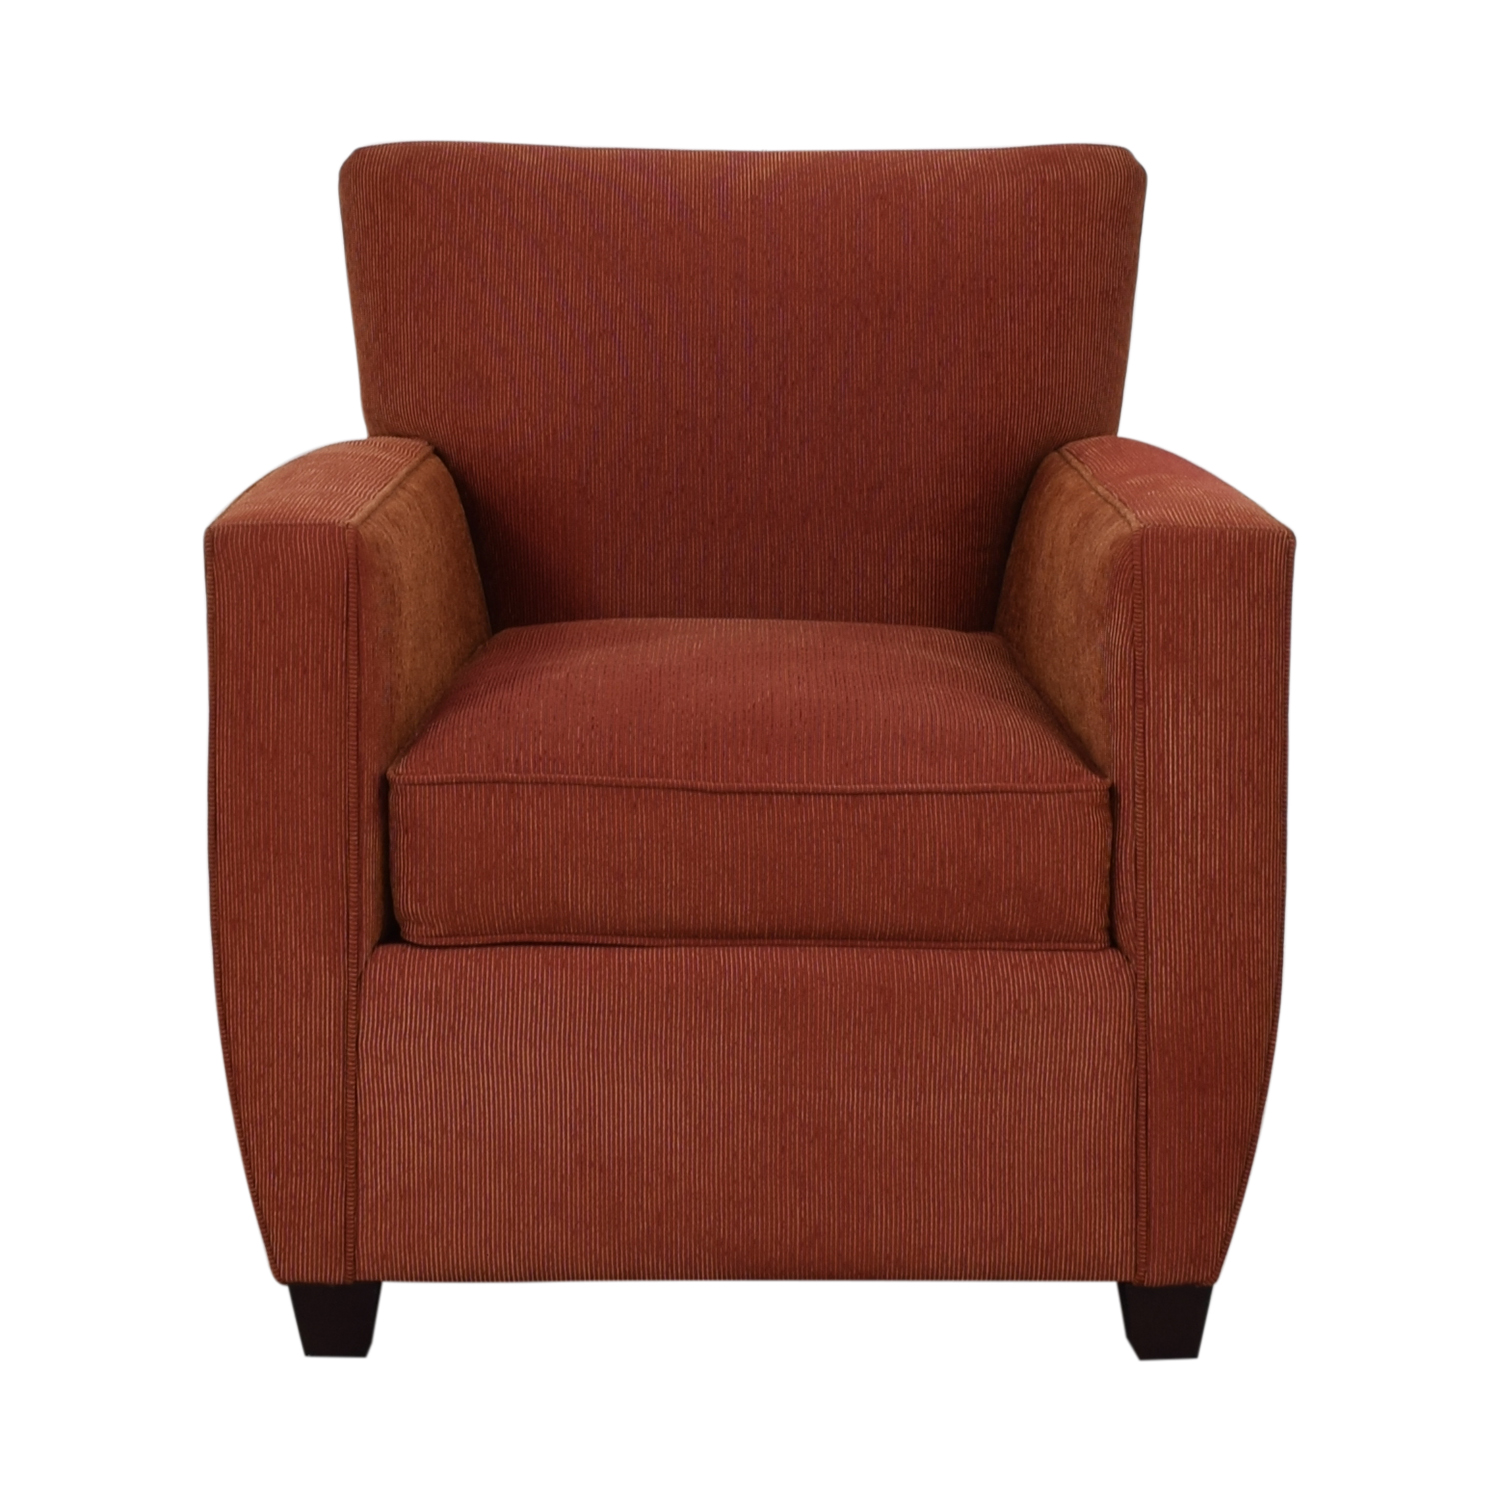 86 Off Crate Barrel Crate Barrel Chili Red Accent Chair Chairs